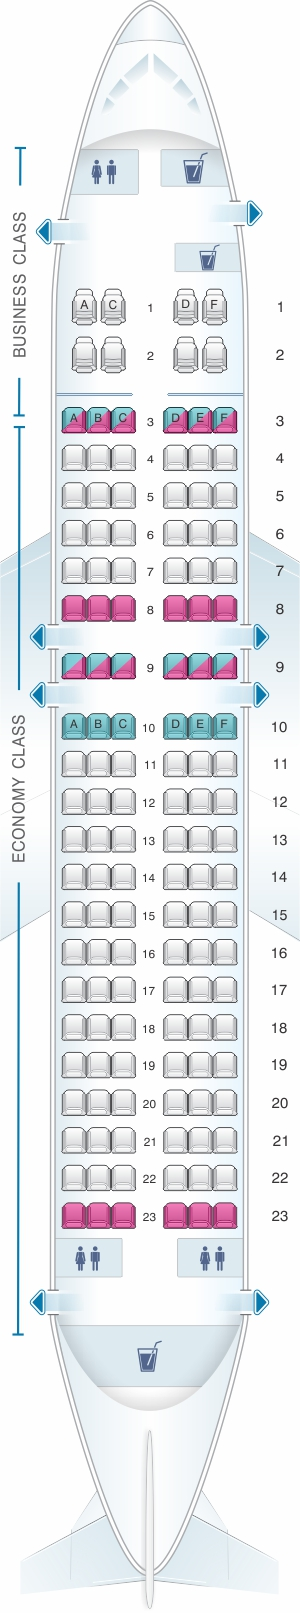 Seat map for SpiceJet Boeing B737 700